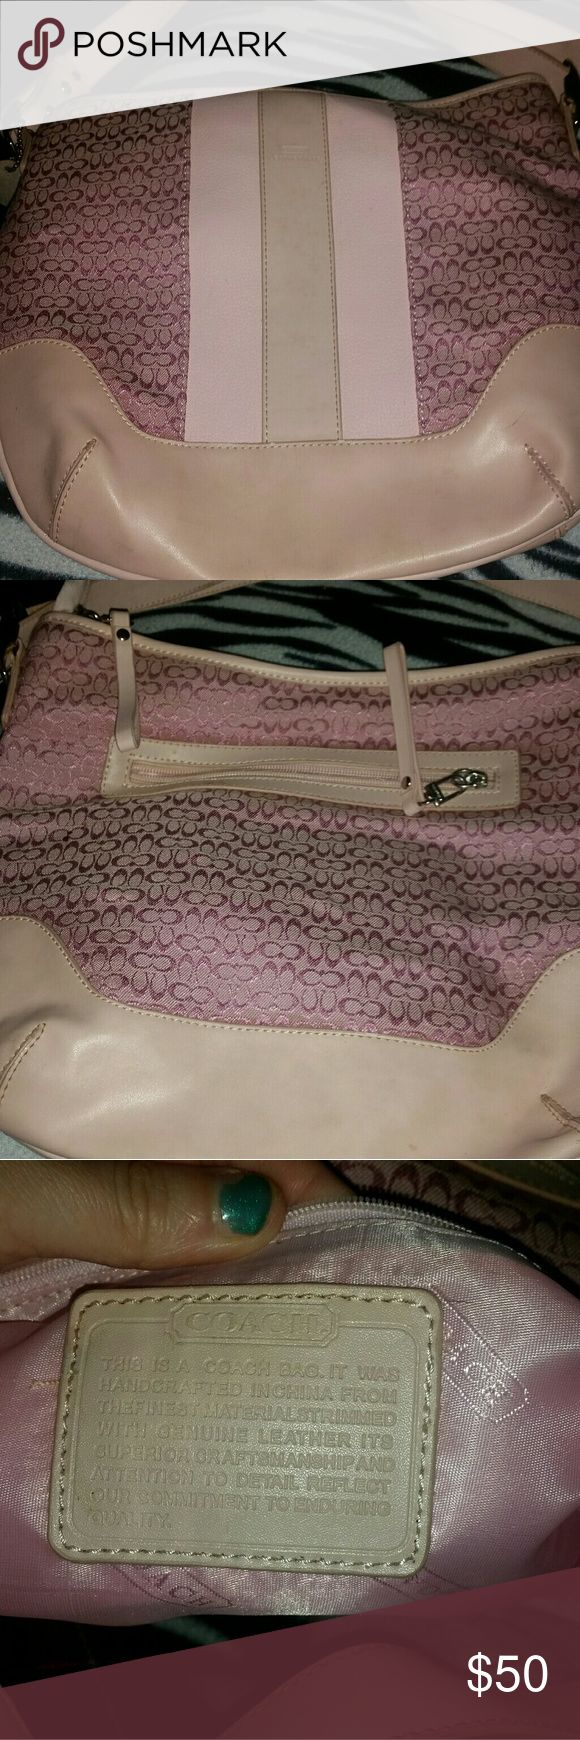 Vintage coach purse Beautiful pink coach purse. Clean inside. Strap a little dirty. Will come clean with leather cleaner. Small mark on the back also. Authentic. No other signs of wear. Coach Bags Shoulder Bags